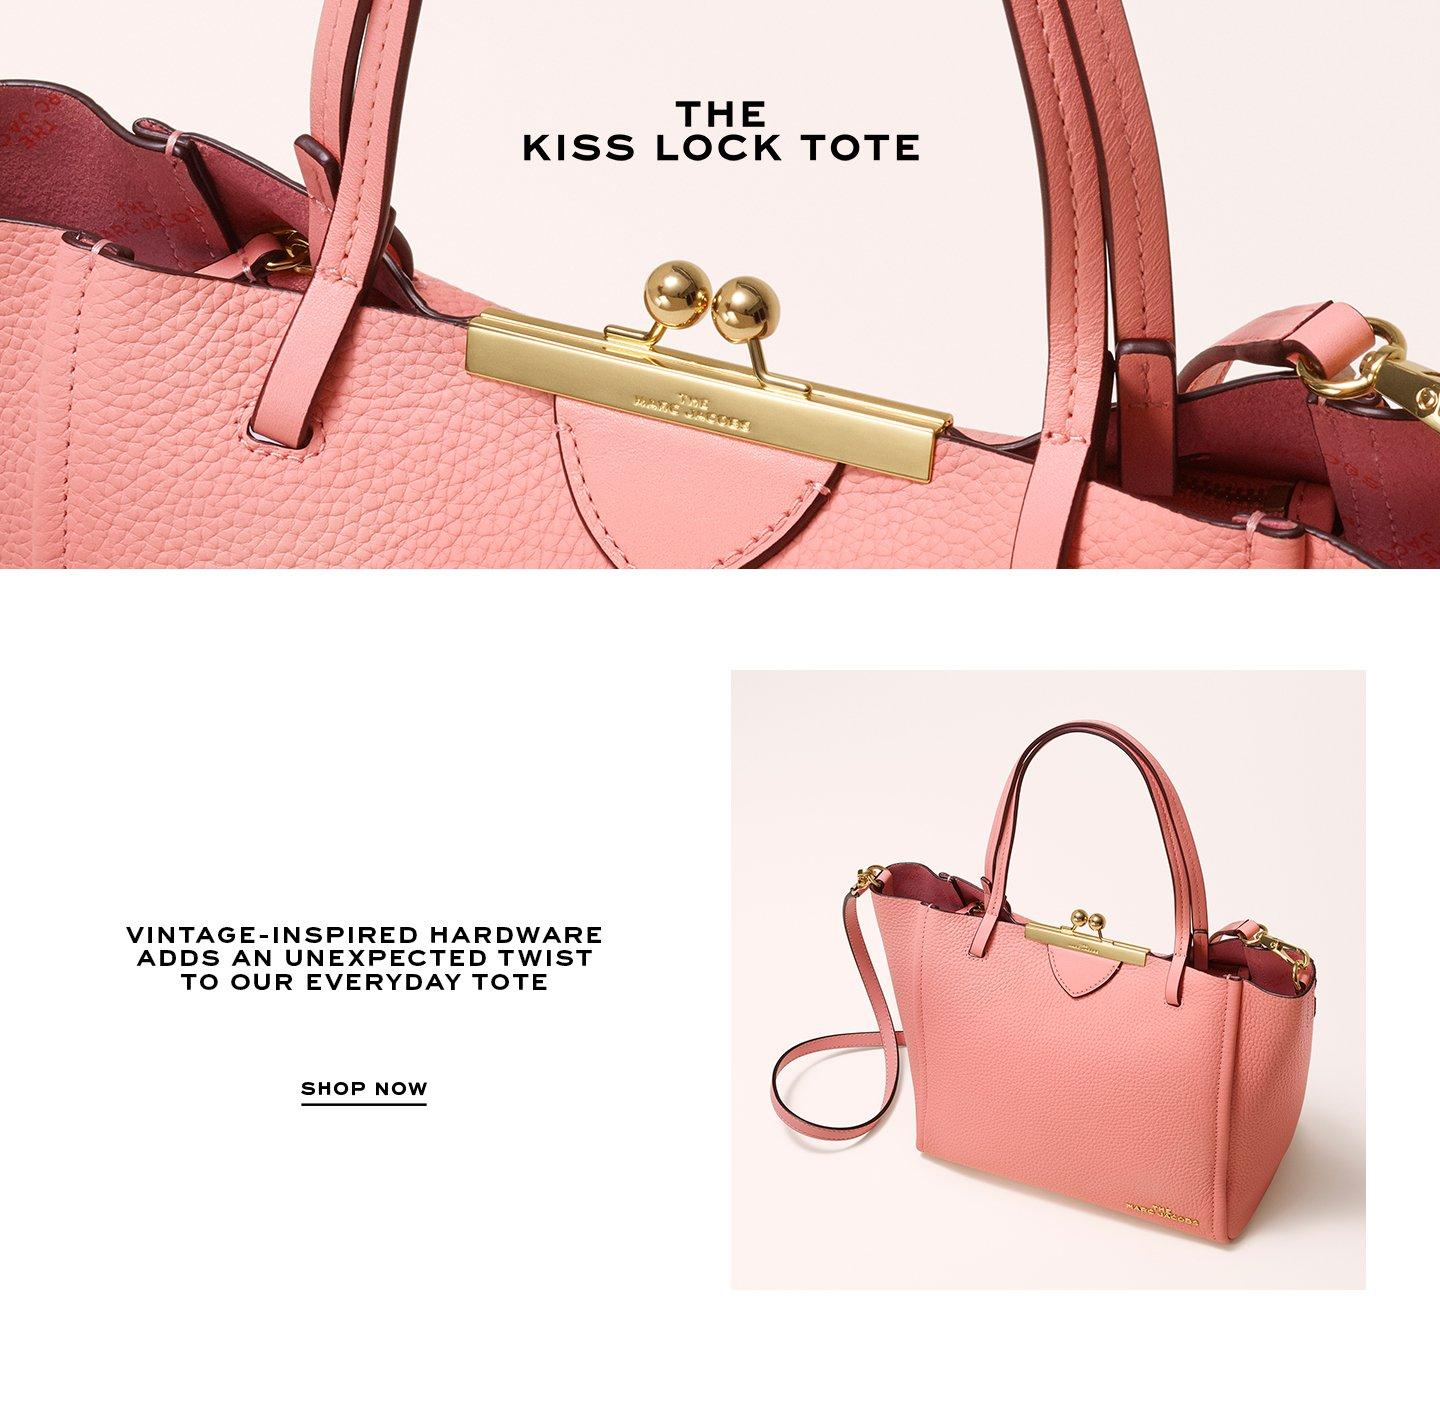 The Kiss Lock Tote, Vintage-inspired hardware adds an unexpected twist to our everyday tote. Shop Now.